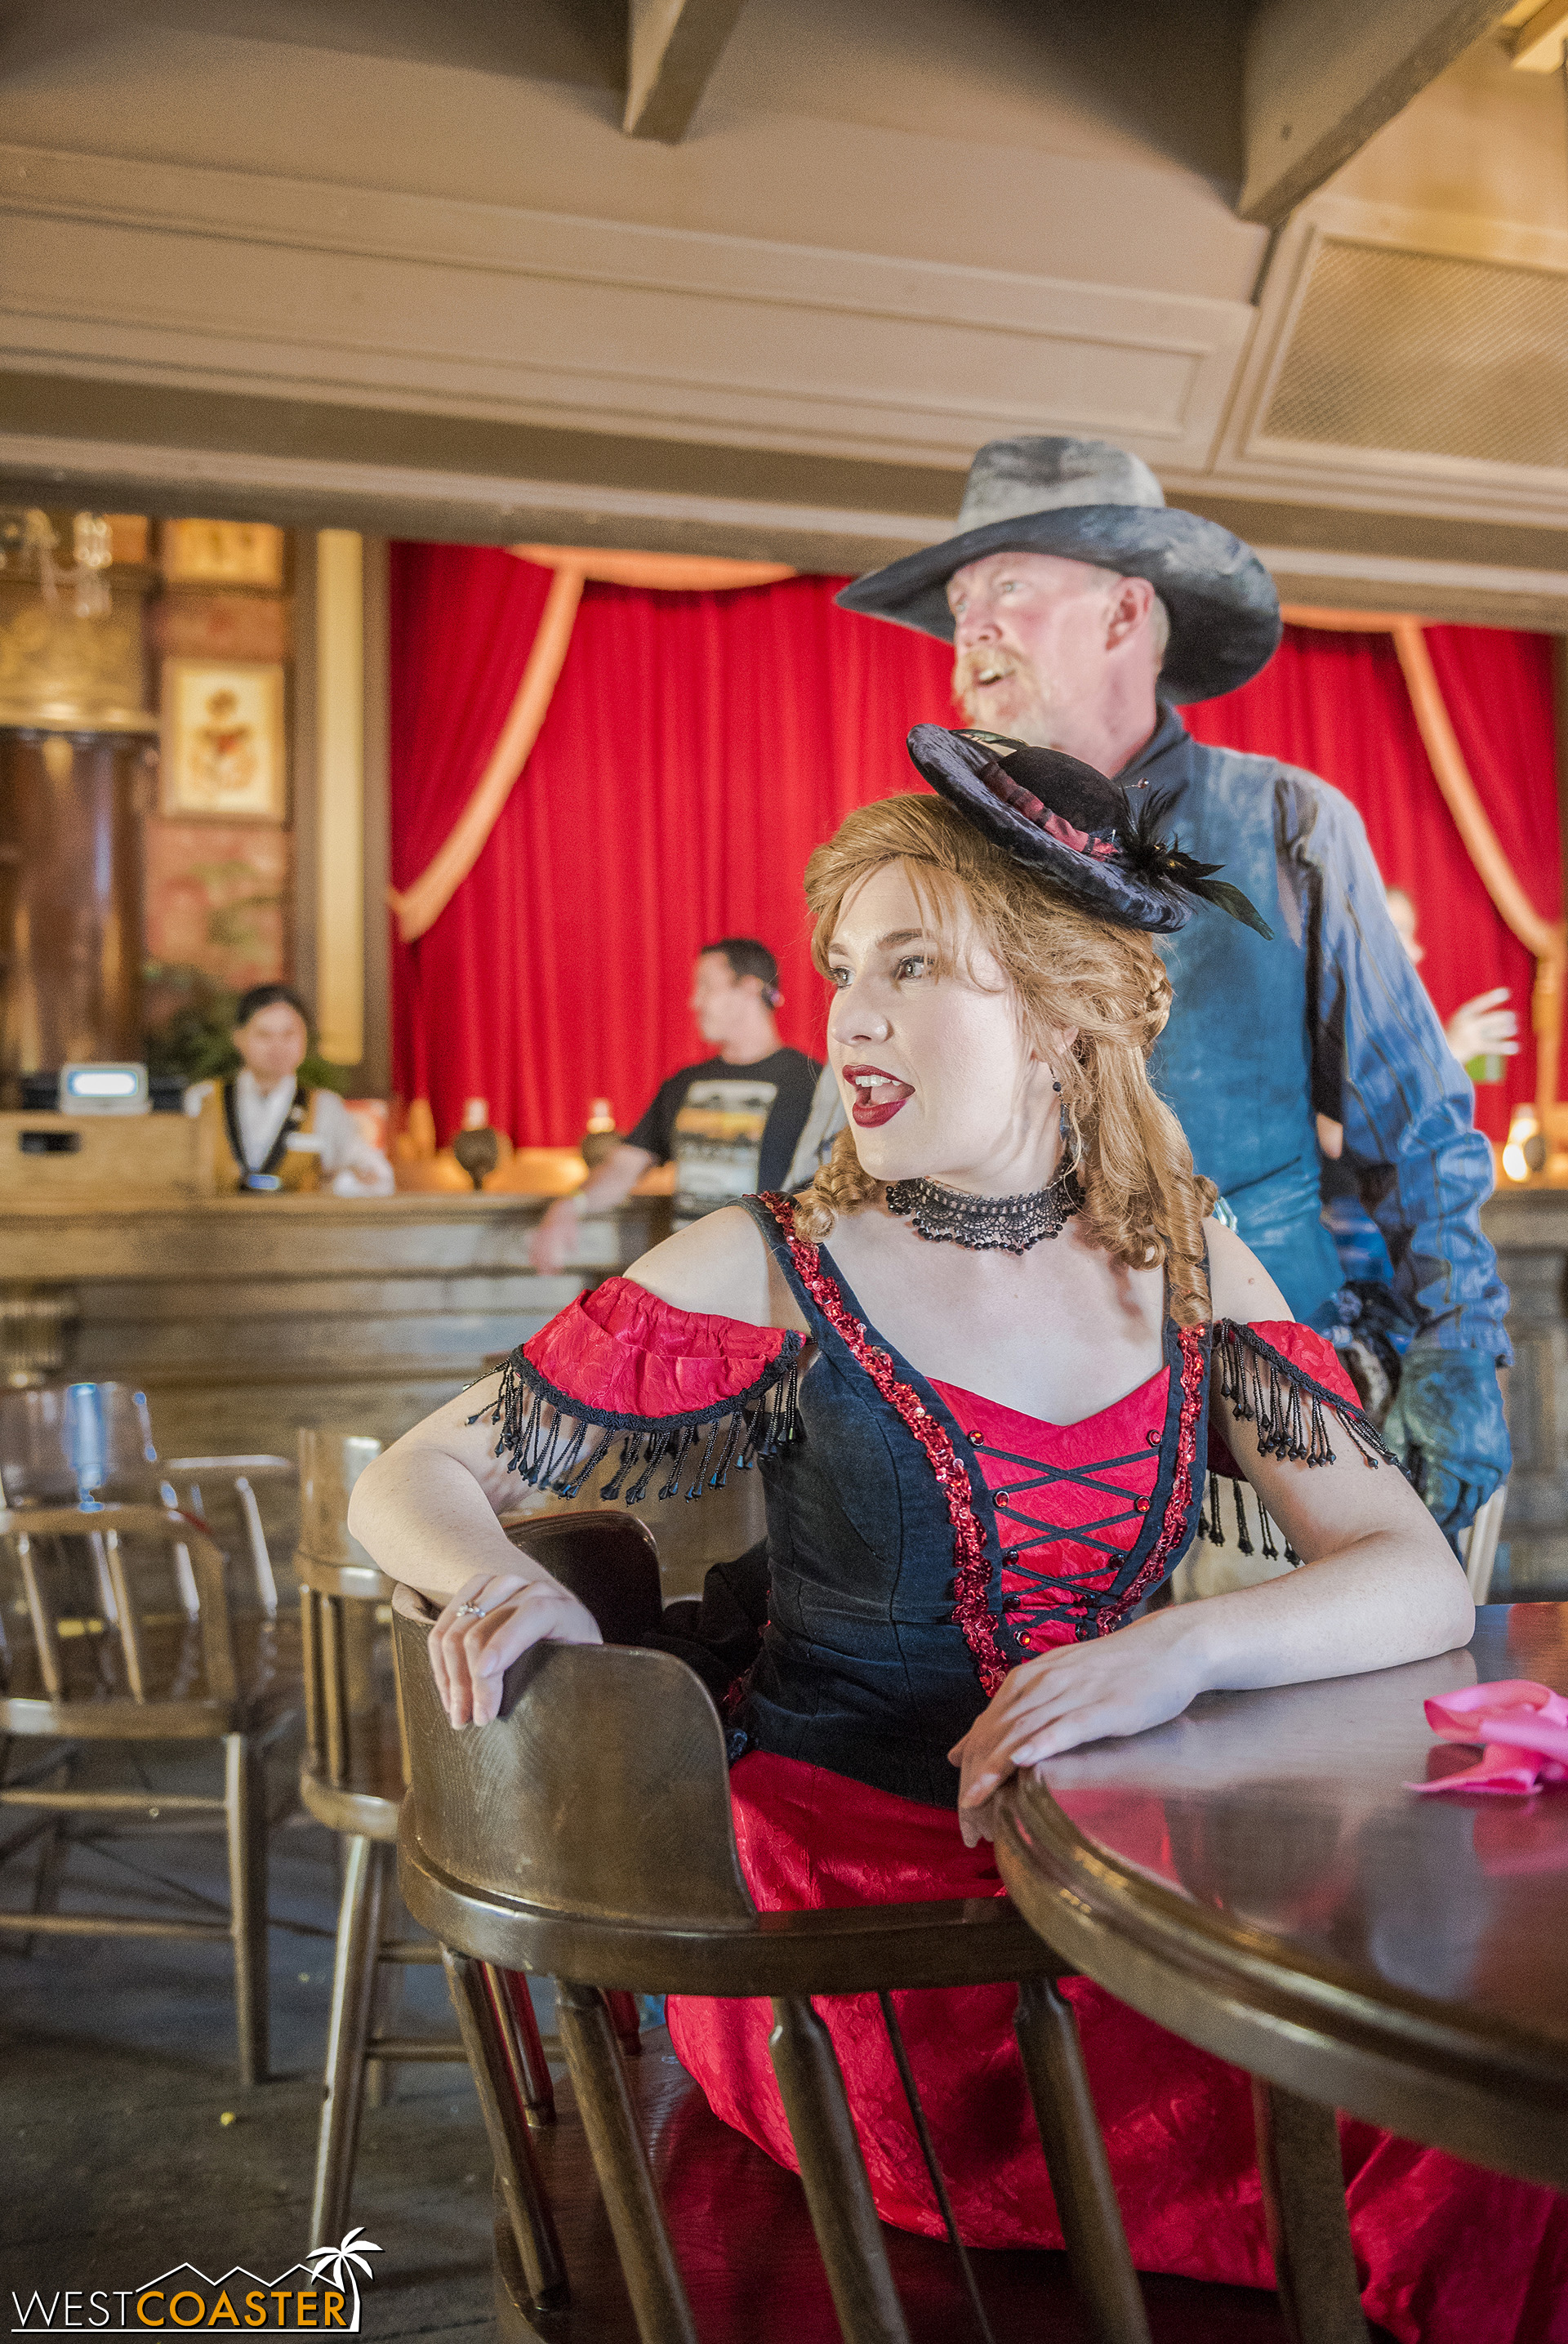 Violet Lee is back too, but rather than help at Goldie's Place like she was last year, Violet has taken over the Calico Saloon (and in fact, the Saloon show has migrated to the Bird Cage Theatre this summer).